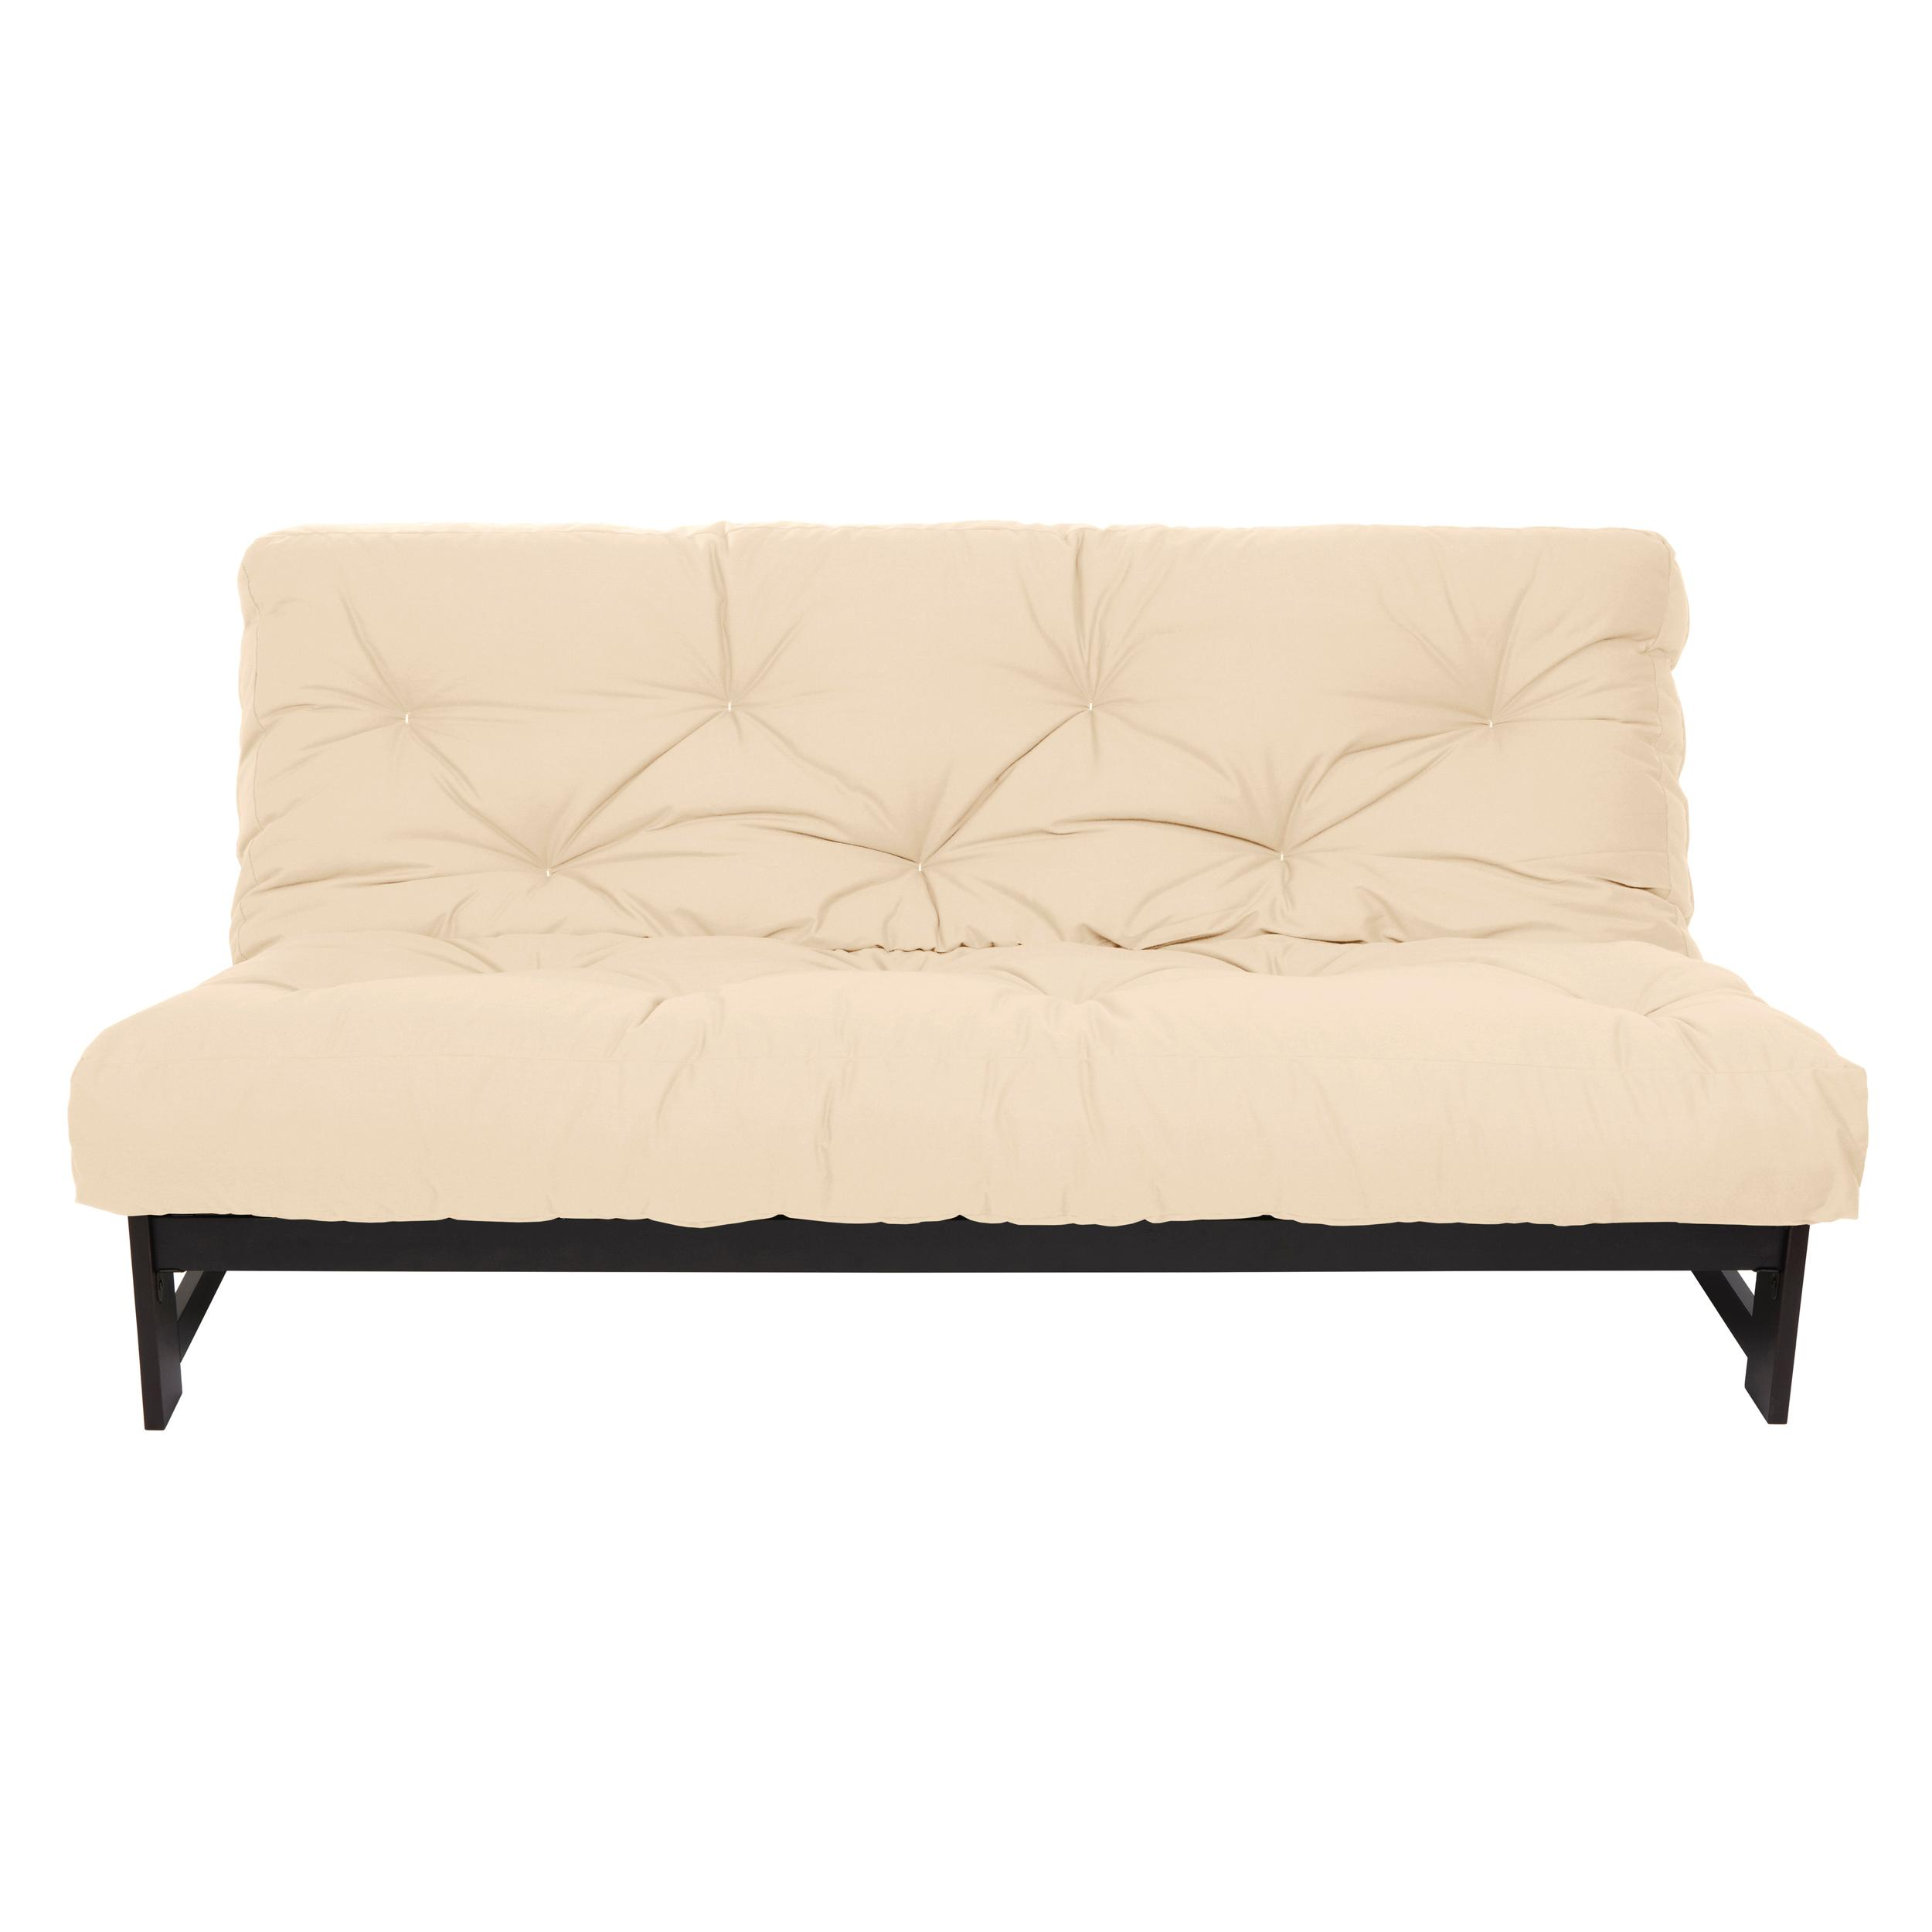 Walmart Futon | Futons for Sale at Walmart | Cheap Couches Walmart